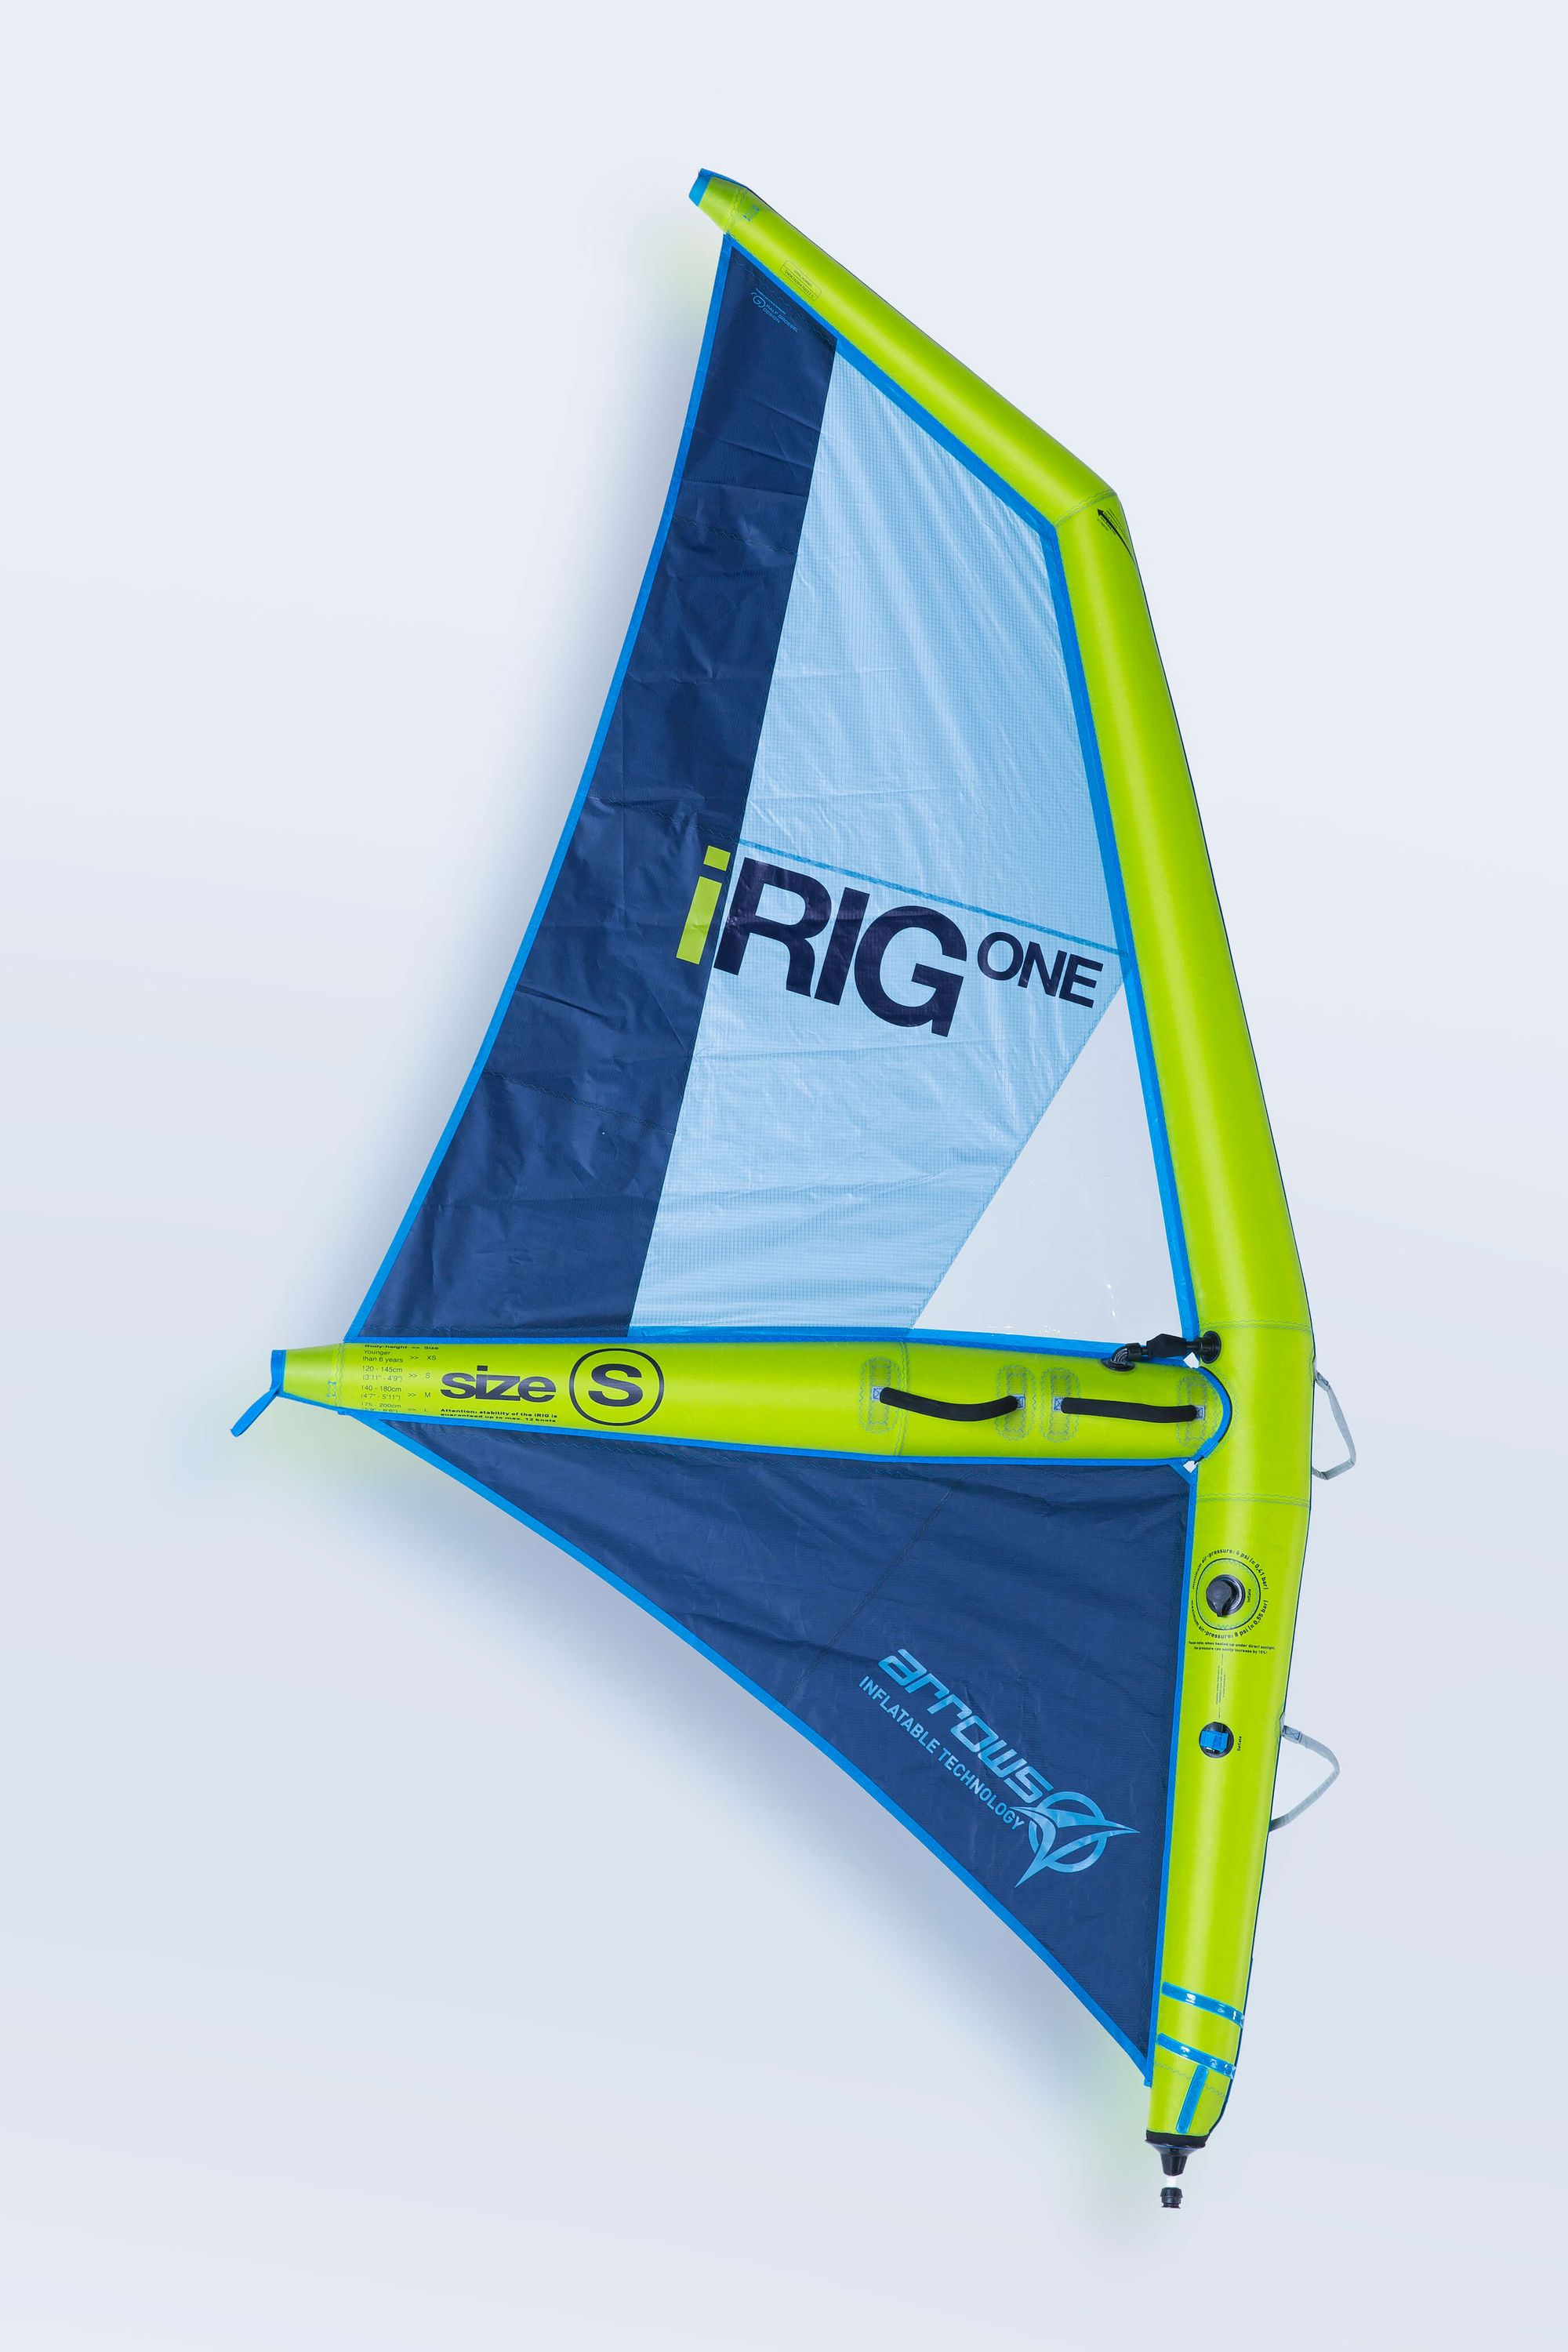 IRig One S aufblasbares Windsurf Segel Arrows